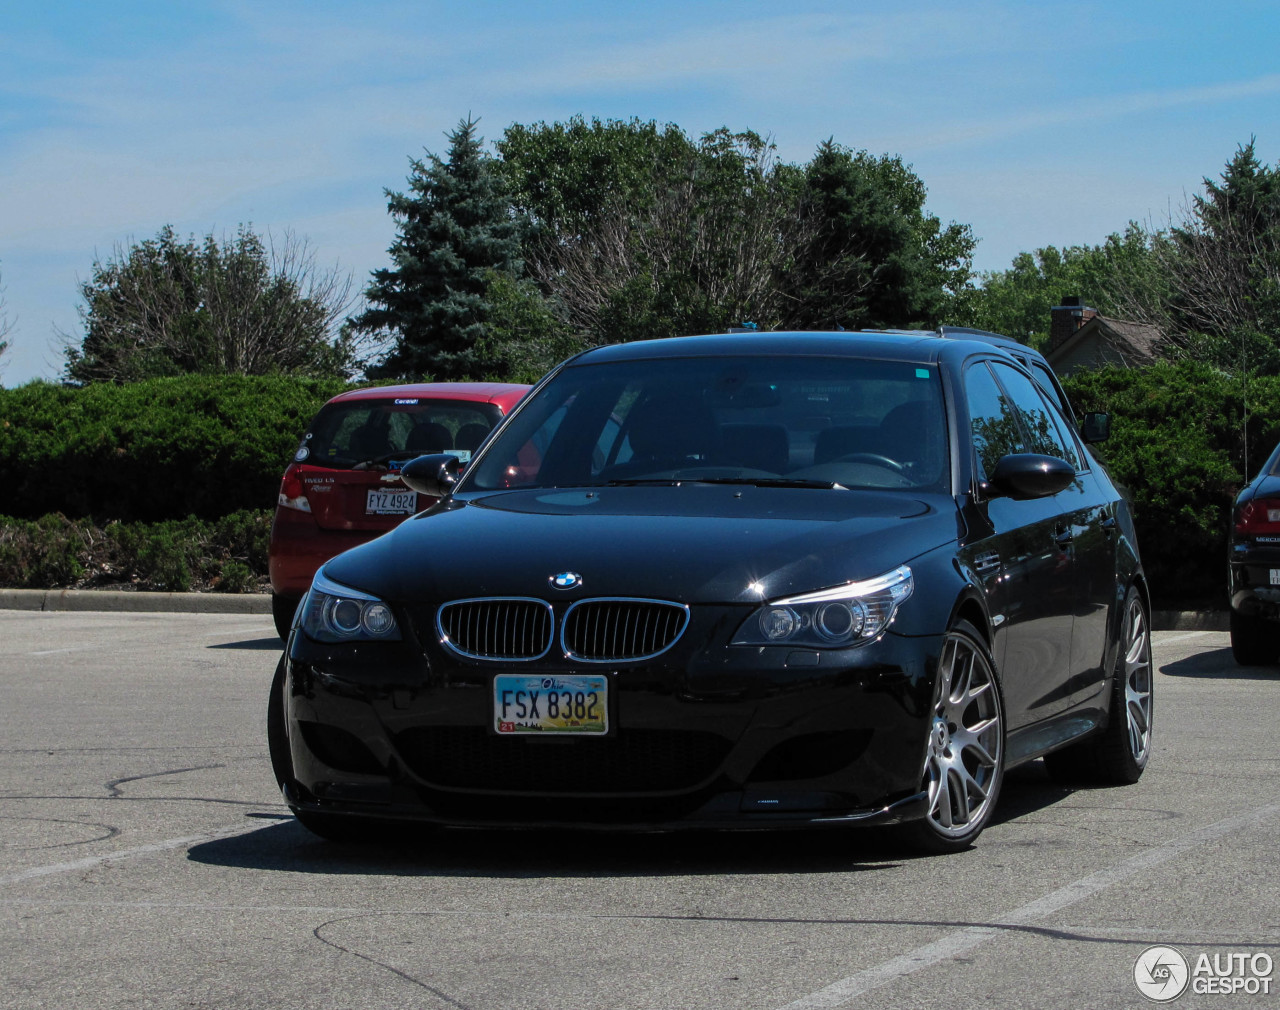 Bmw Dinan M5 E60 29 October 2015 Autogespot